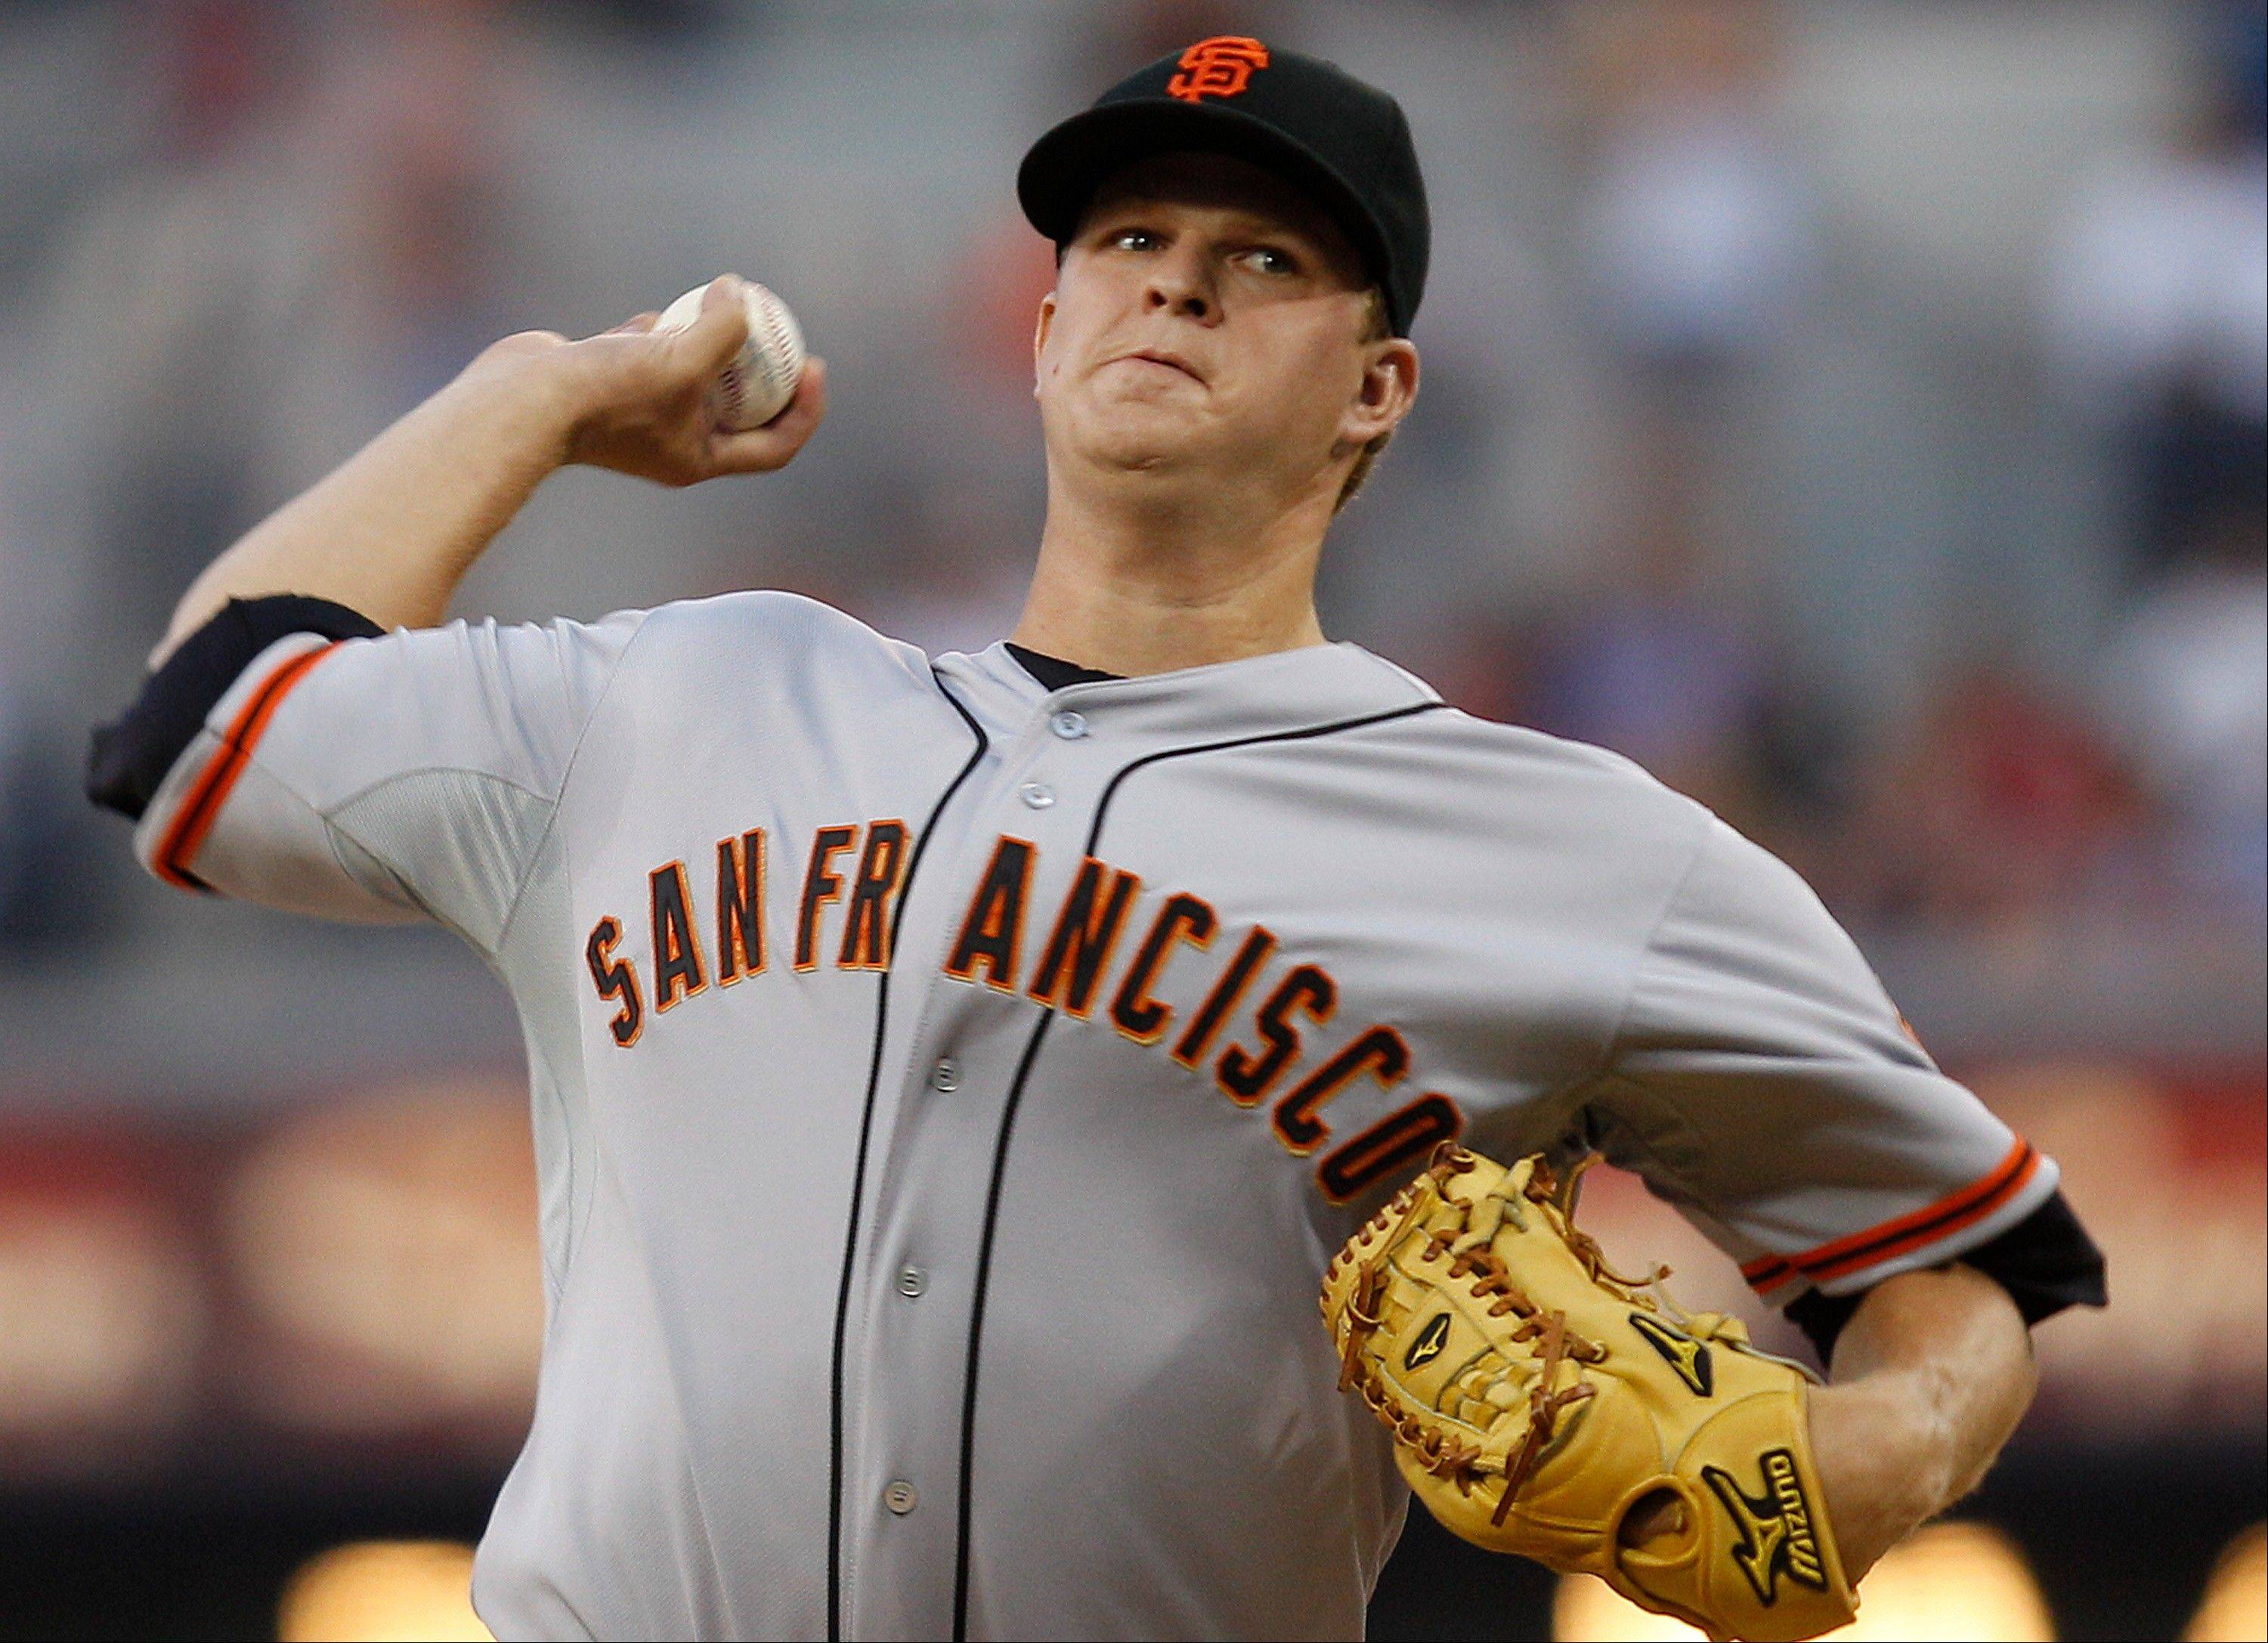 San Francisco Giants starting pitcher Matt Cain gave up one run on four hits Friday night in San Diego to earn his 12th win.